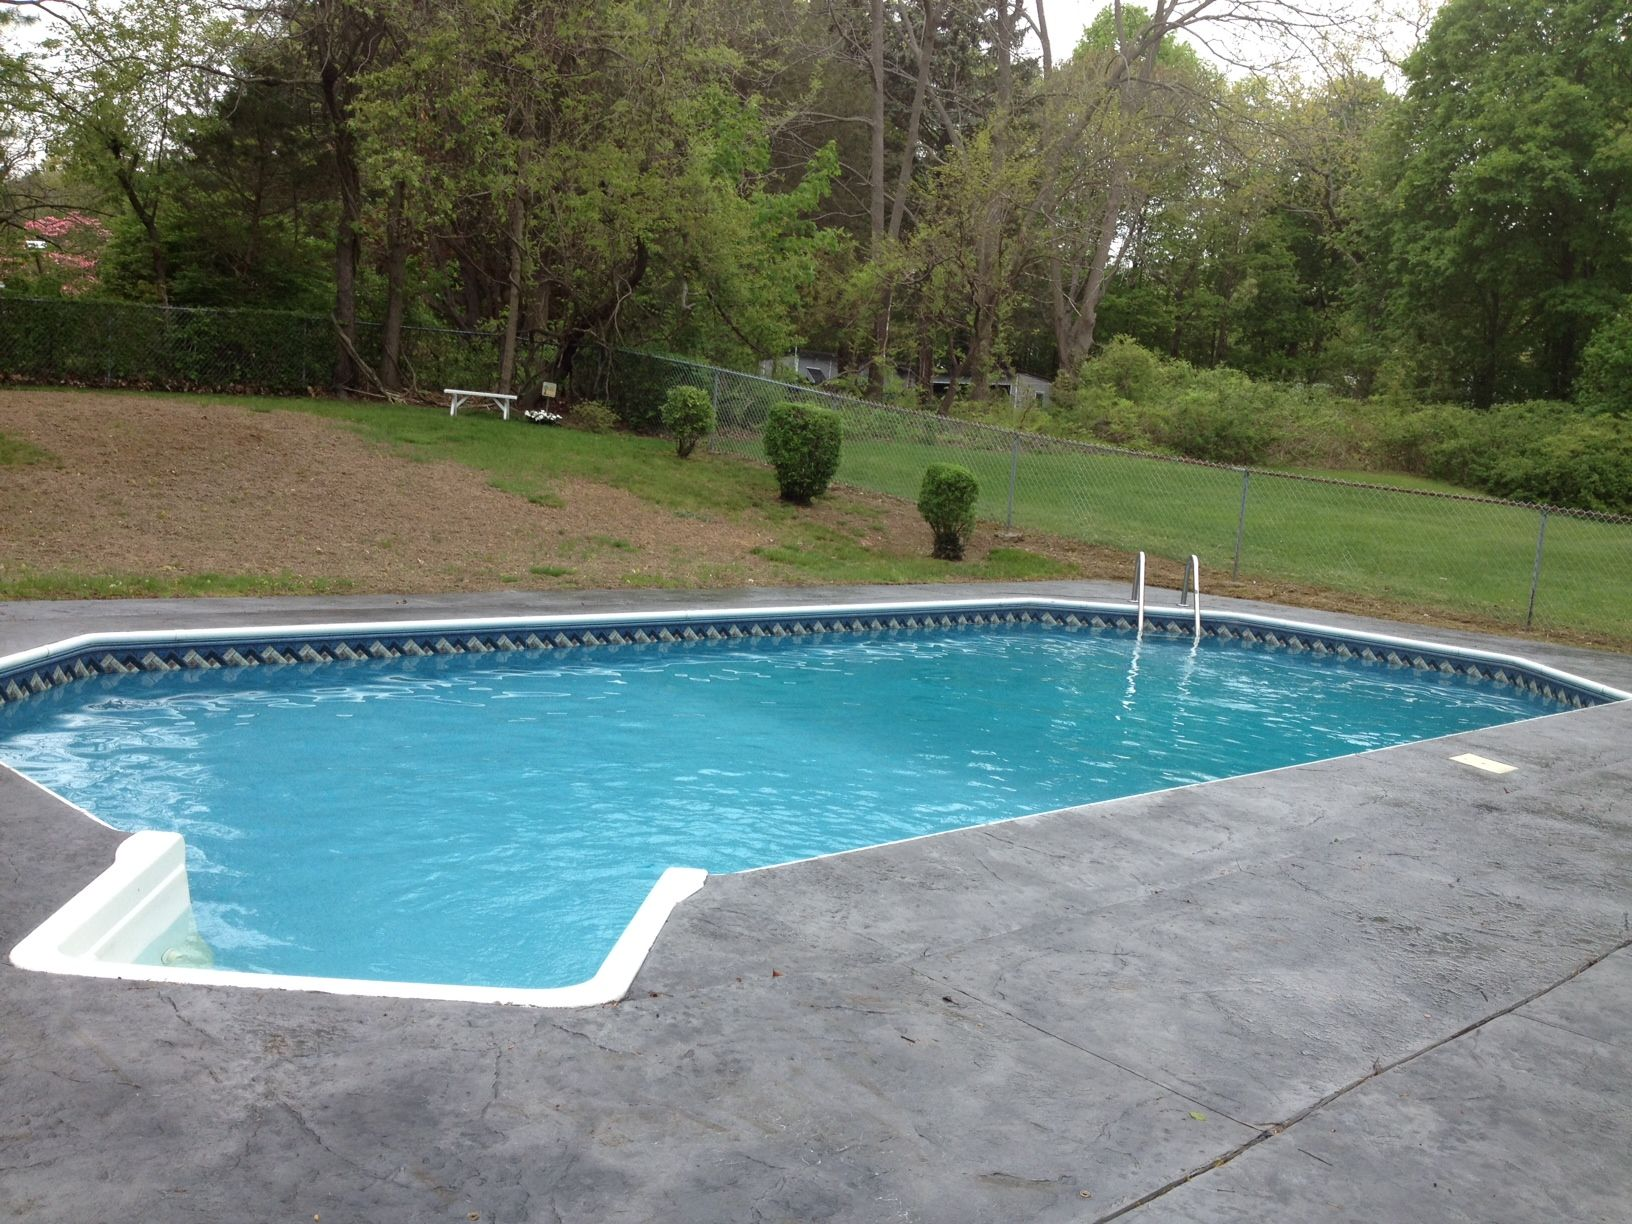 Grecian Style In Ground Pool Liner Replacement A1pools A1poolsct A1poolsandspas Linerreplacement I In Ground Pools Pool Renovation Pool Liner Replacement